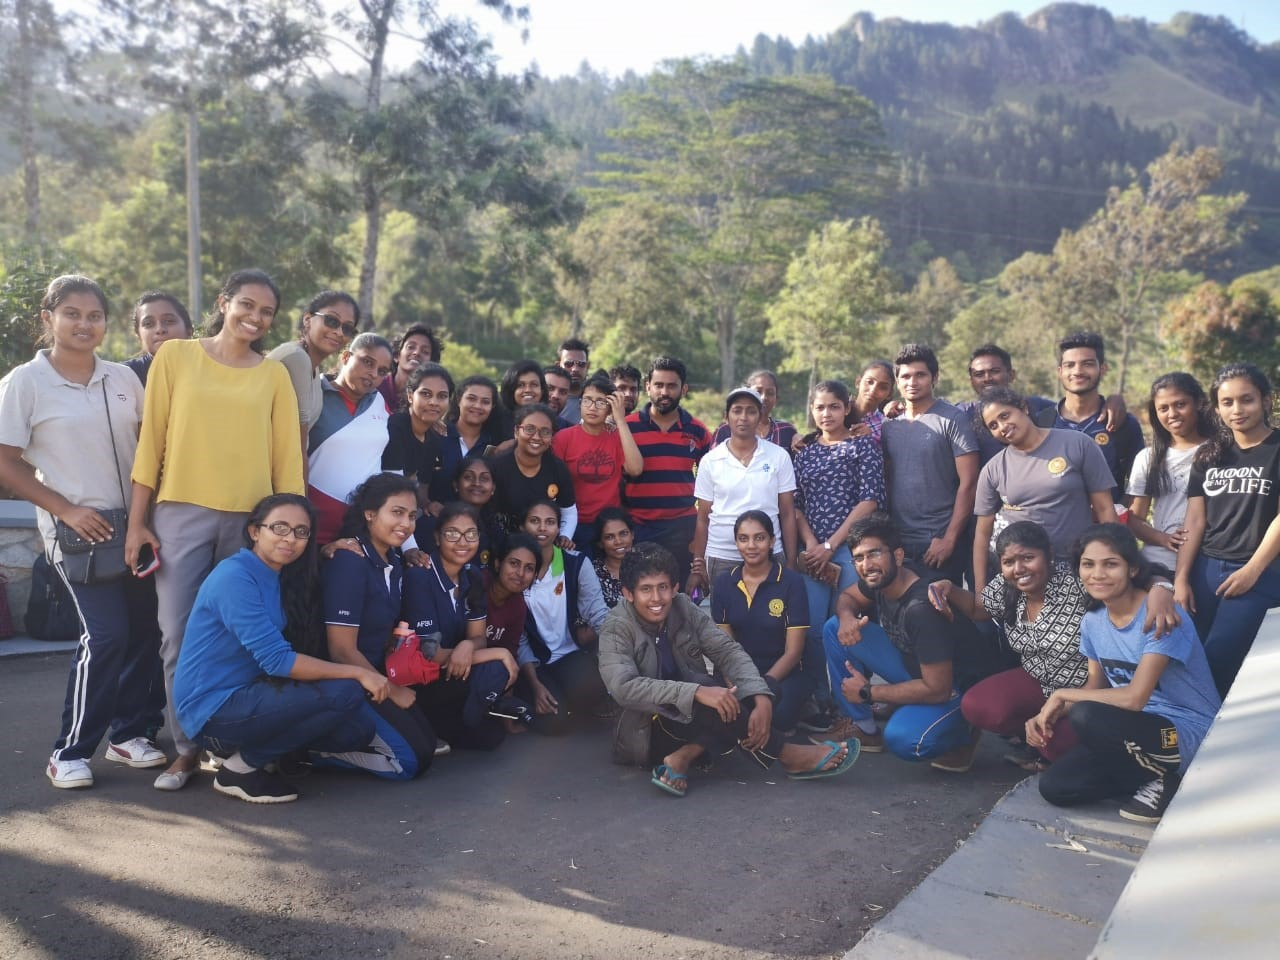 Outward-bound training program for new majoring students